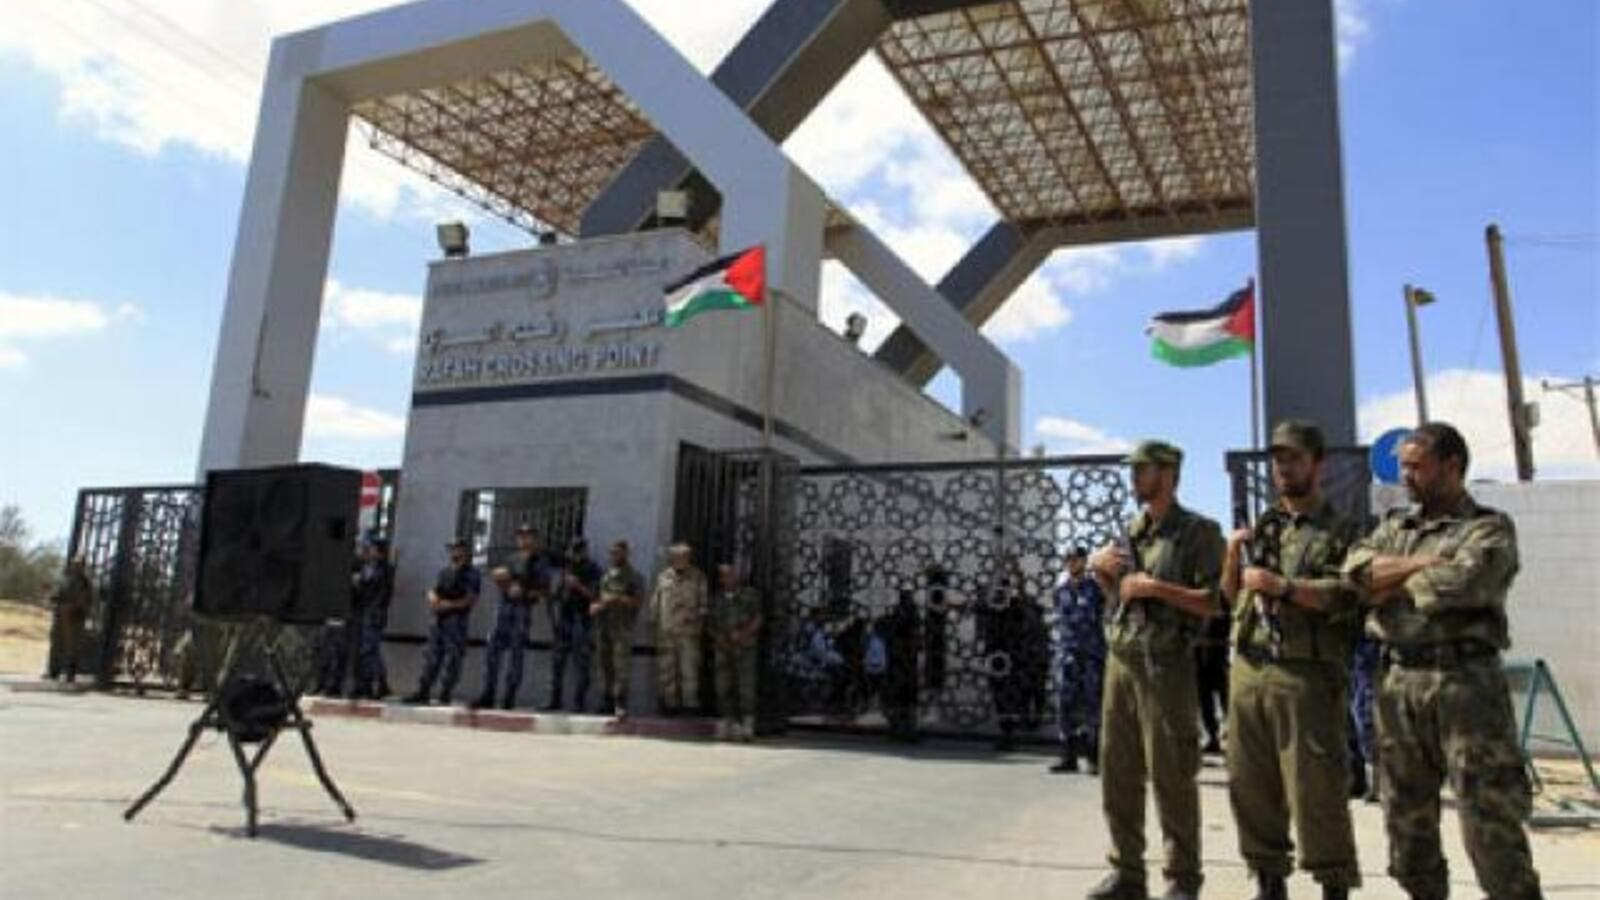 Guards posted at Rafah crossing to Gaza. (AFP/File)